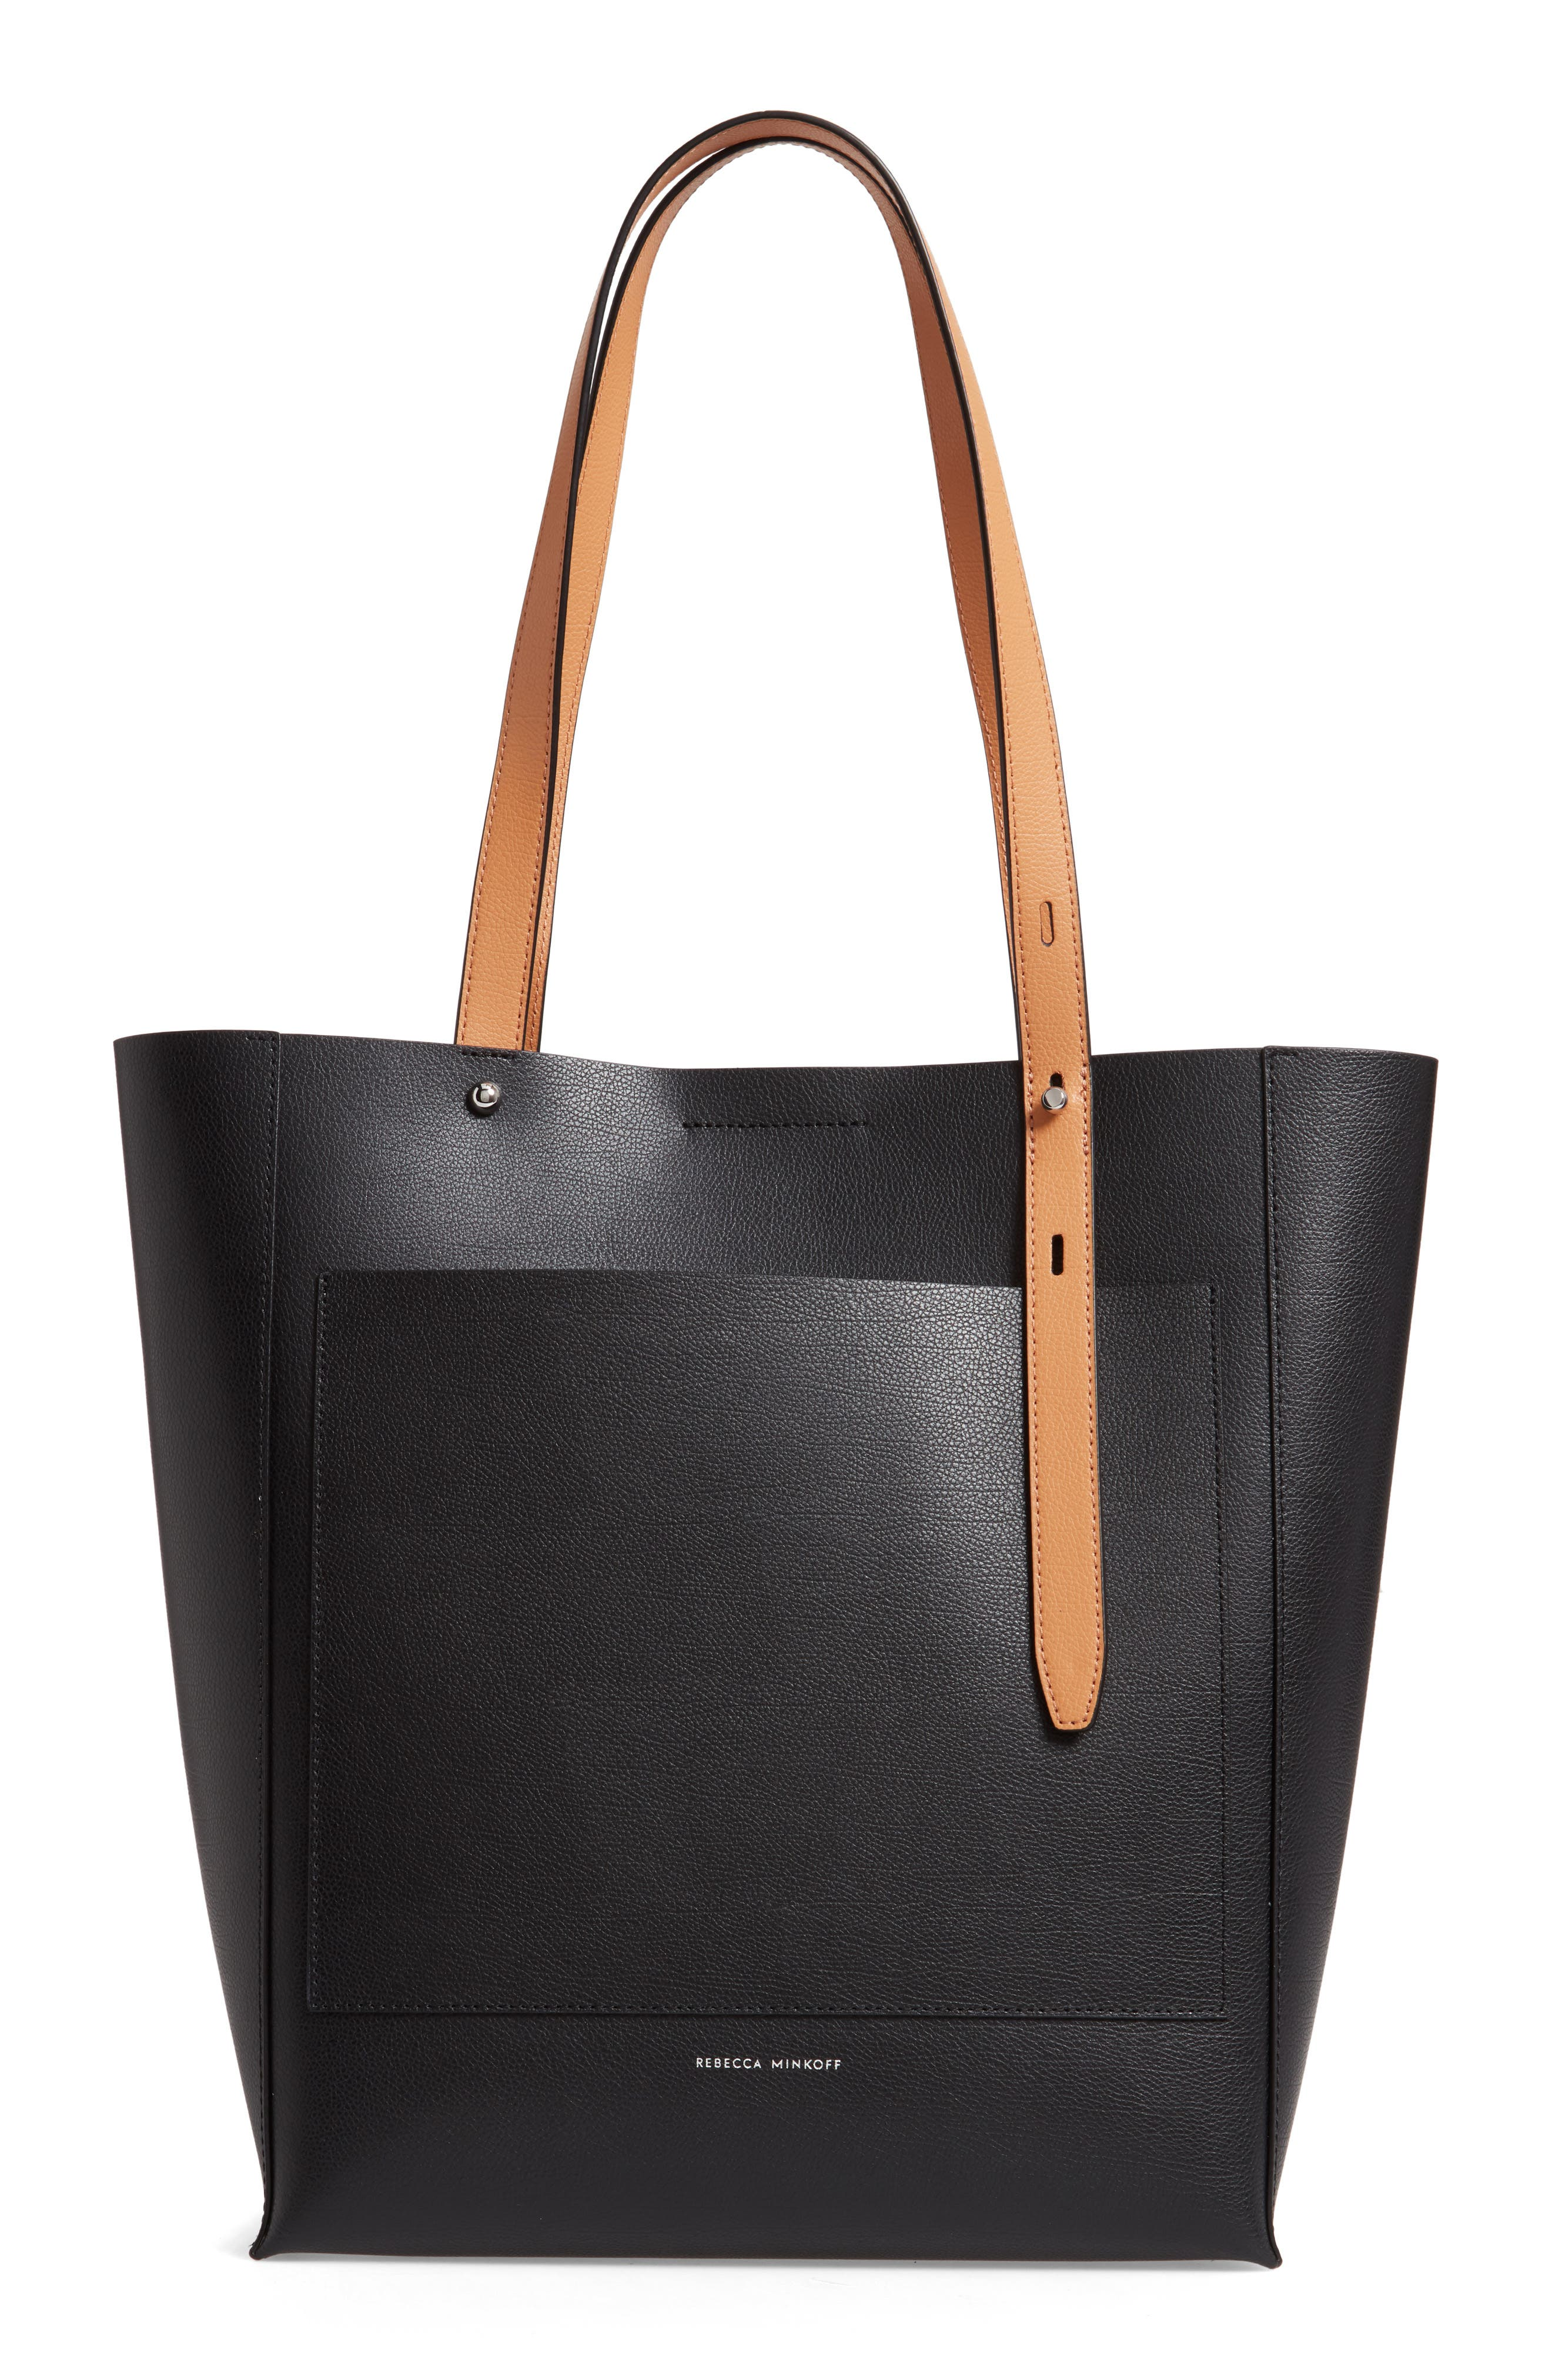 REBECCA MINKOFF, Stella Leather Tote, Alternate thumbnail 4, color, BLACK/ HONEY